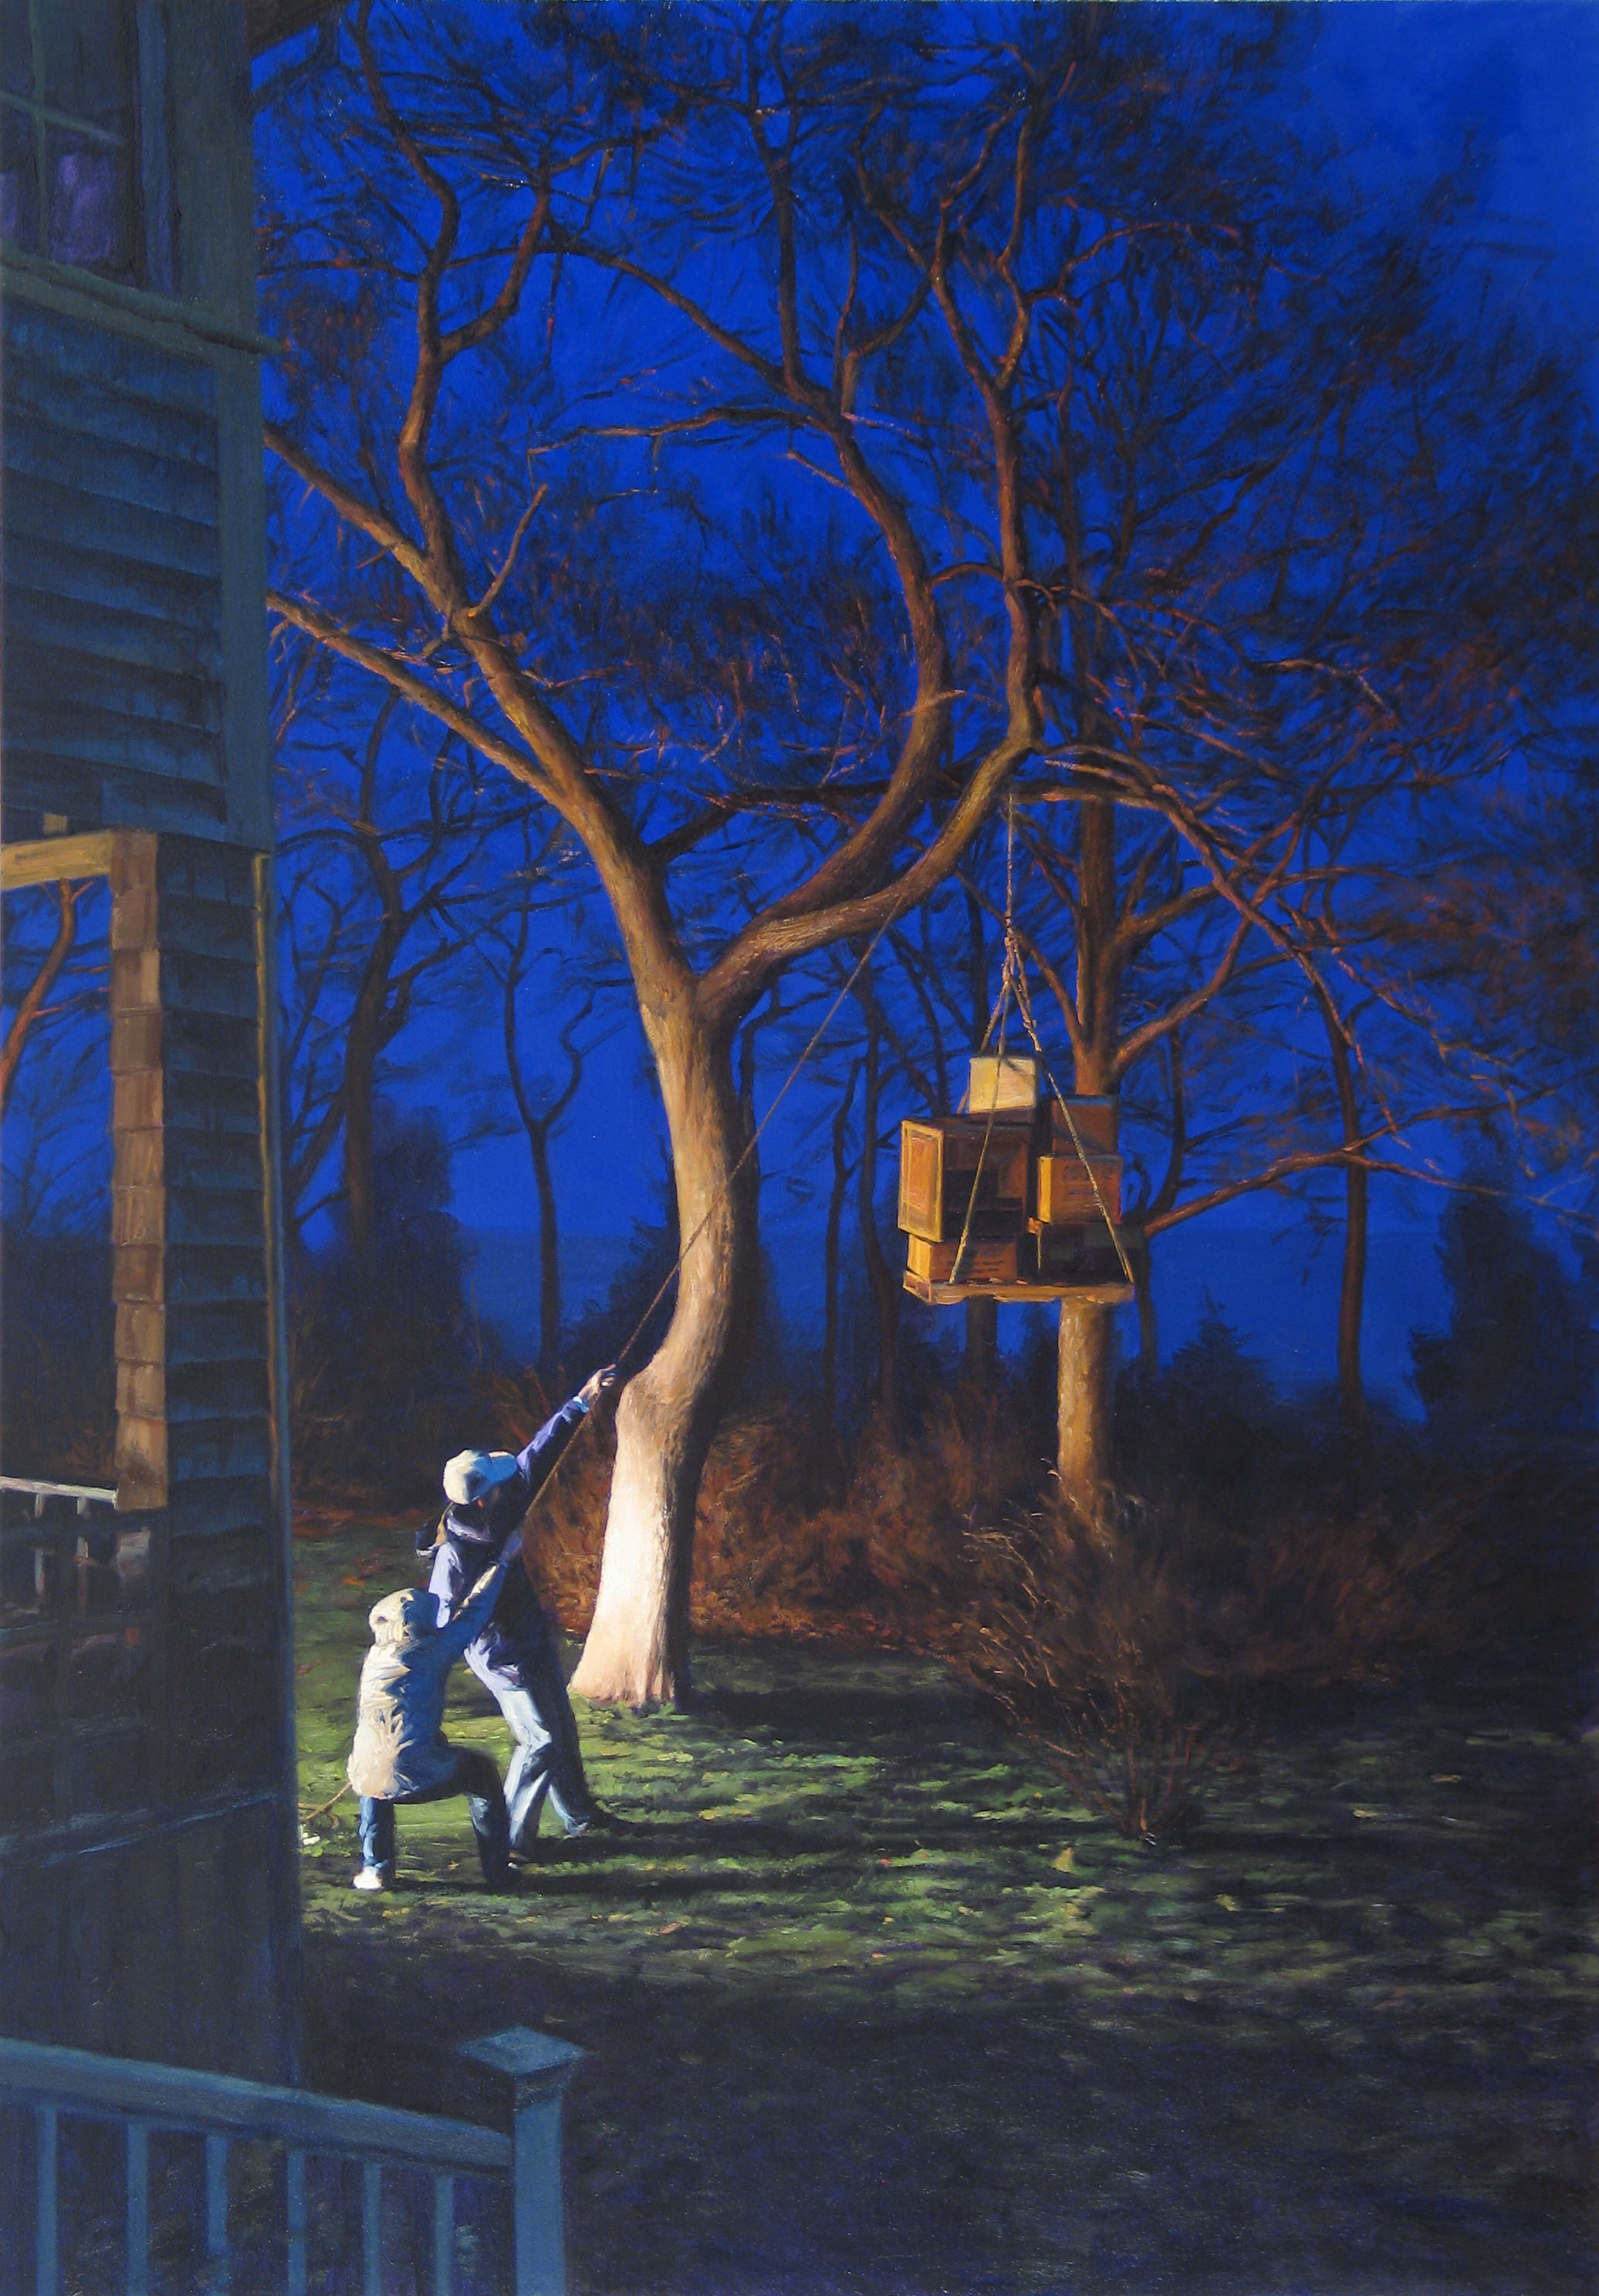 Preparations at Dusk,  2005 oil on canvas, 50 x 35 inches